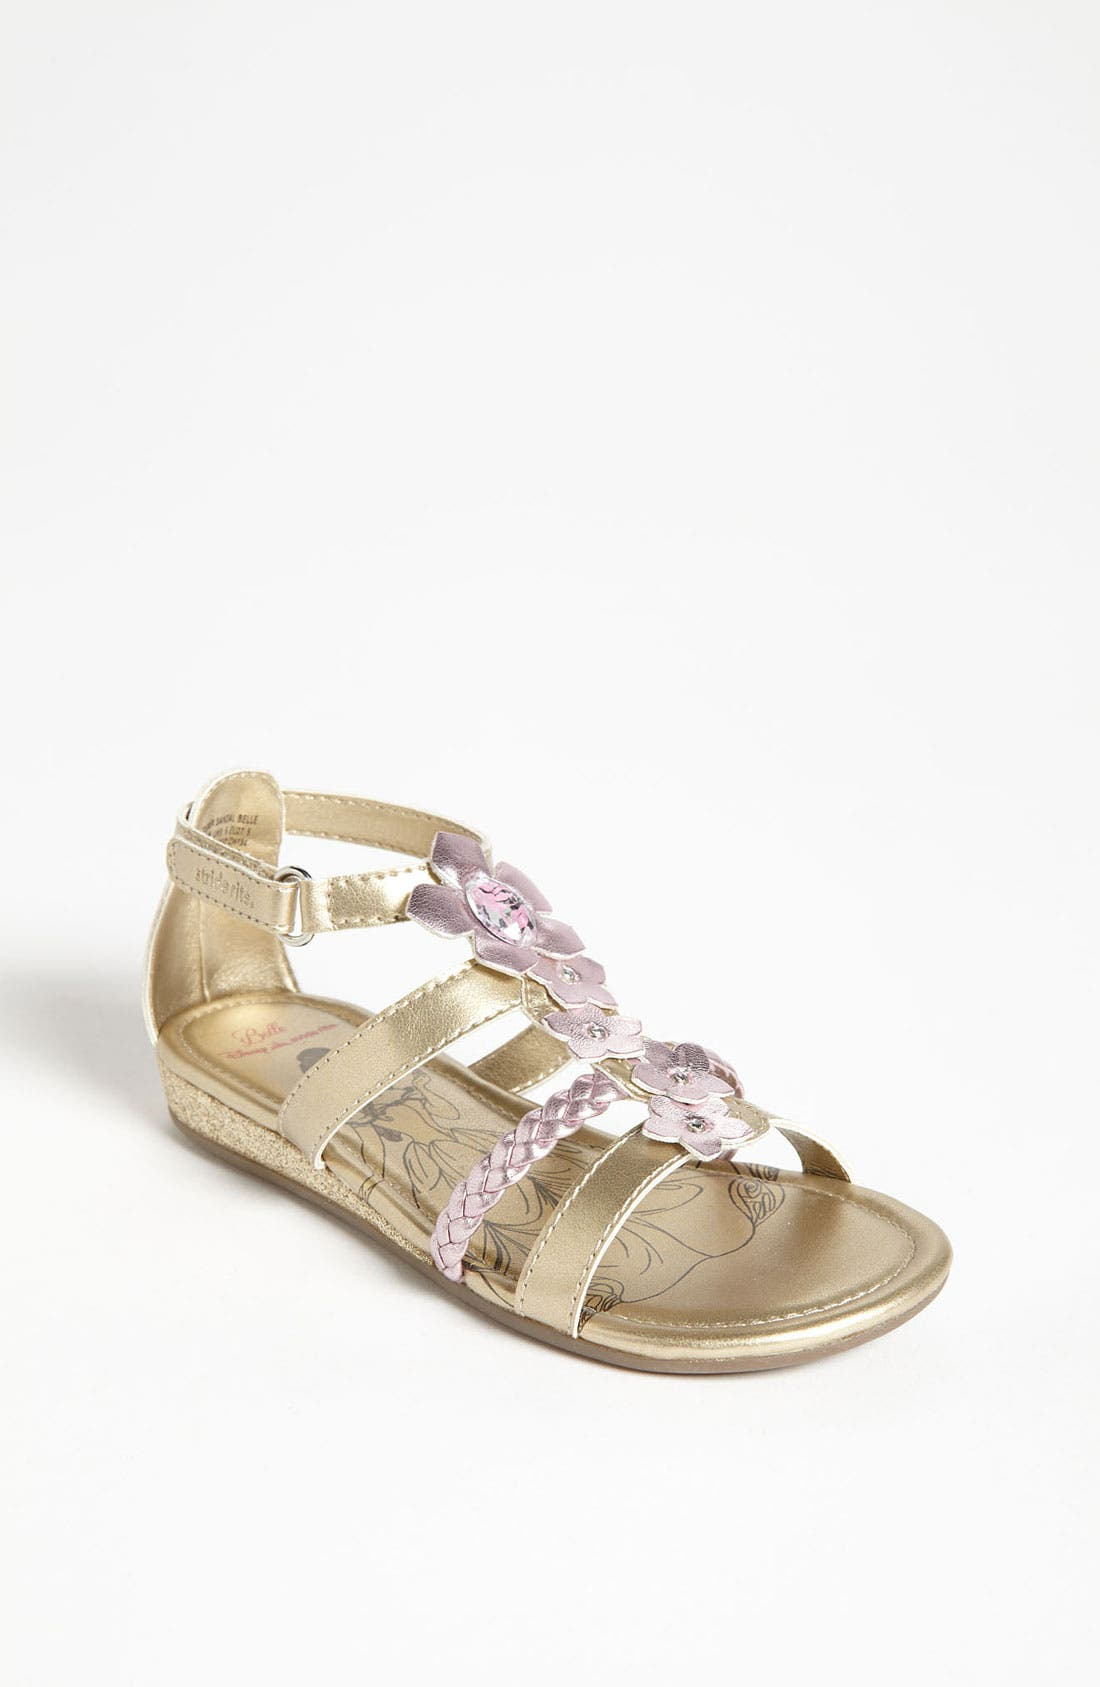 Alternate Image 1 Selected - Stride Rite 'Disney™ - Belle' Sandal (Toddler)